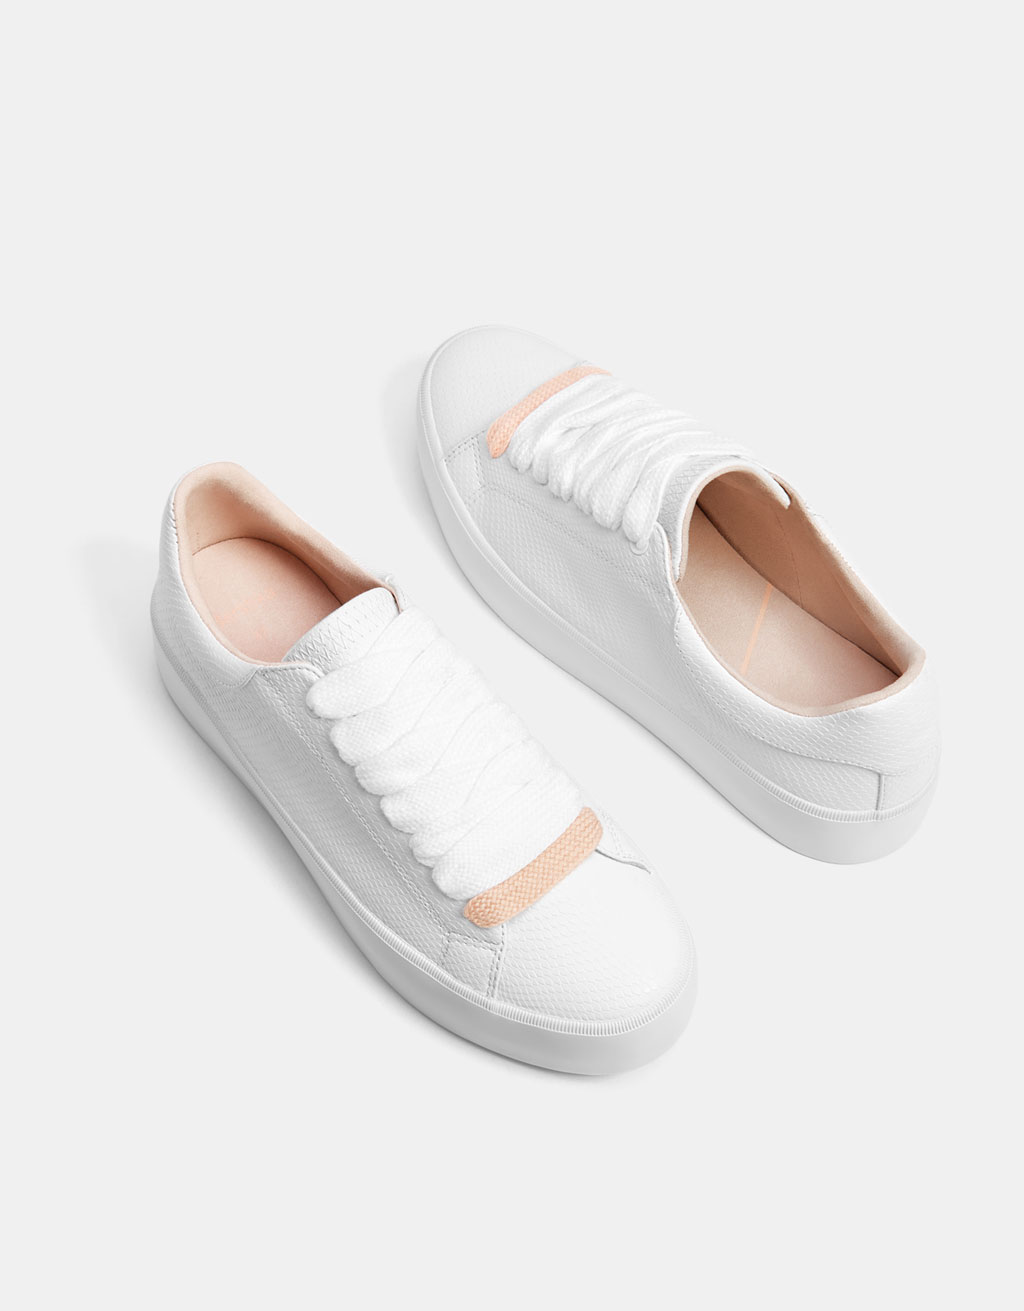 Embossed white sneakers